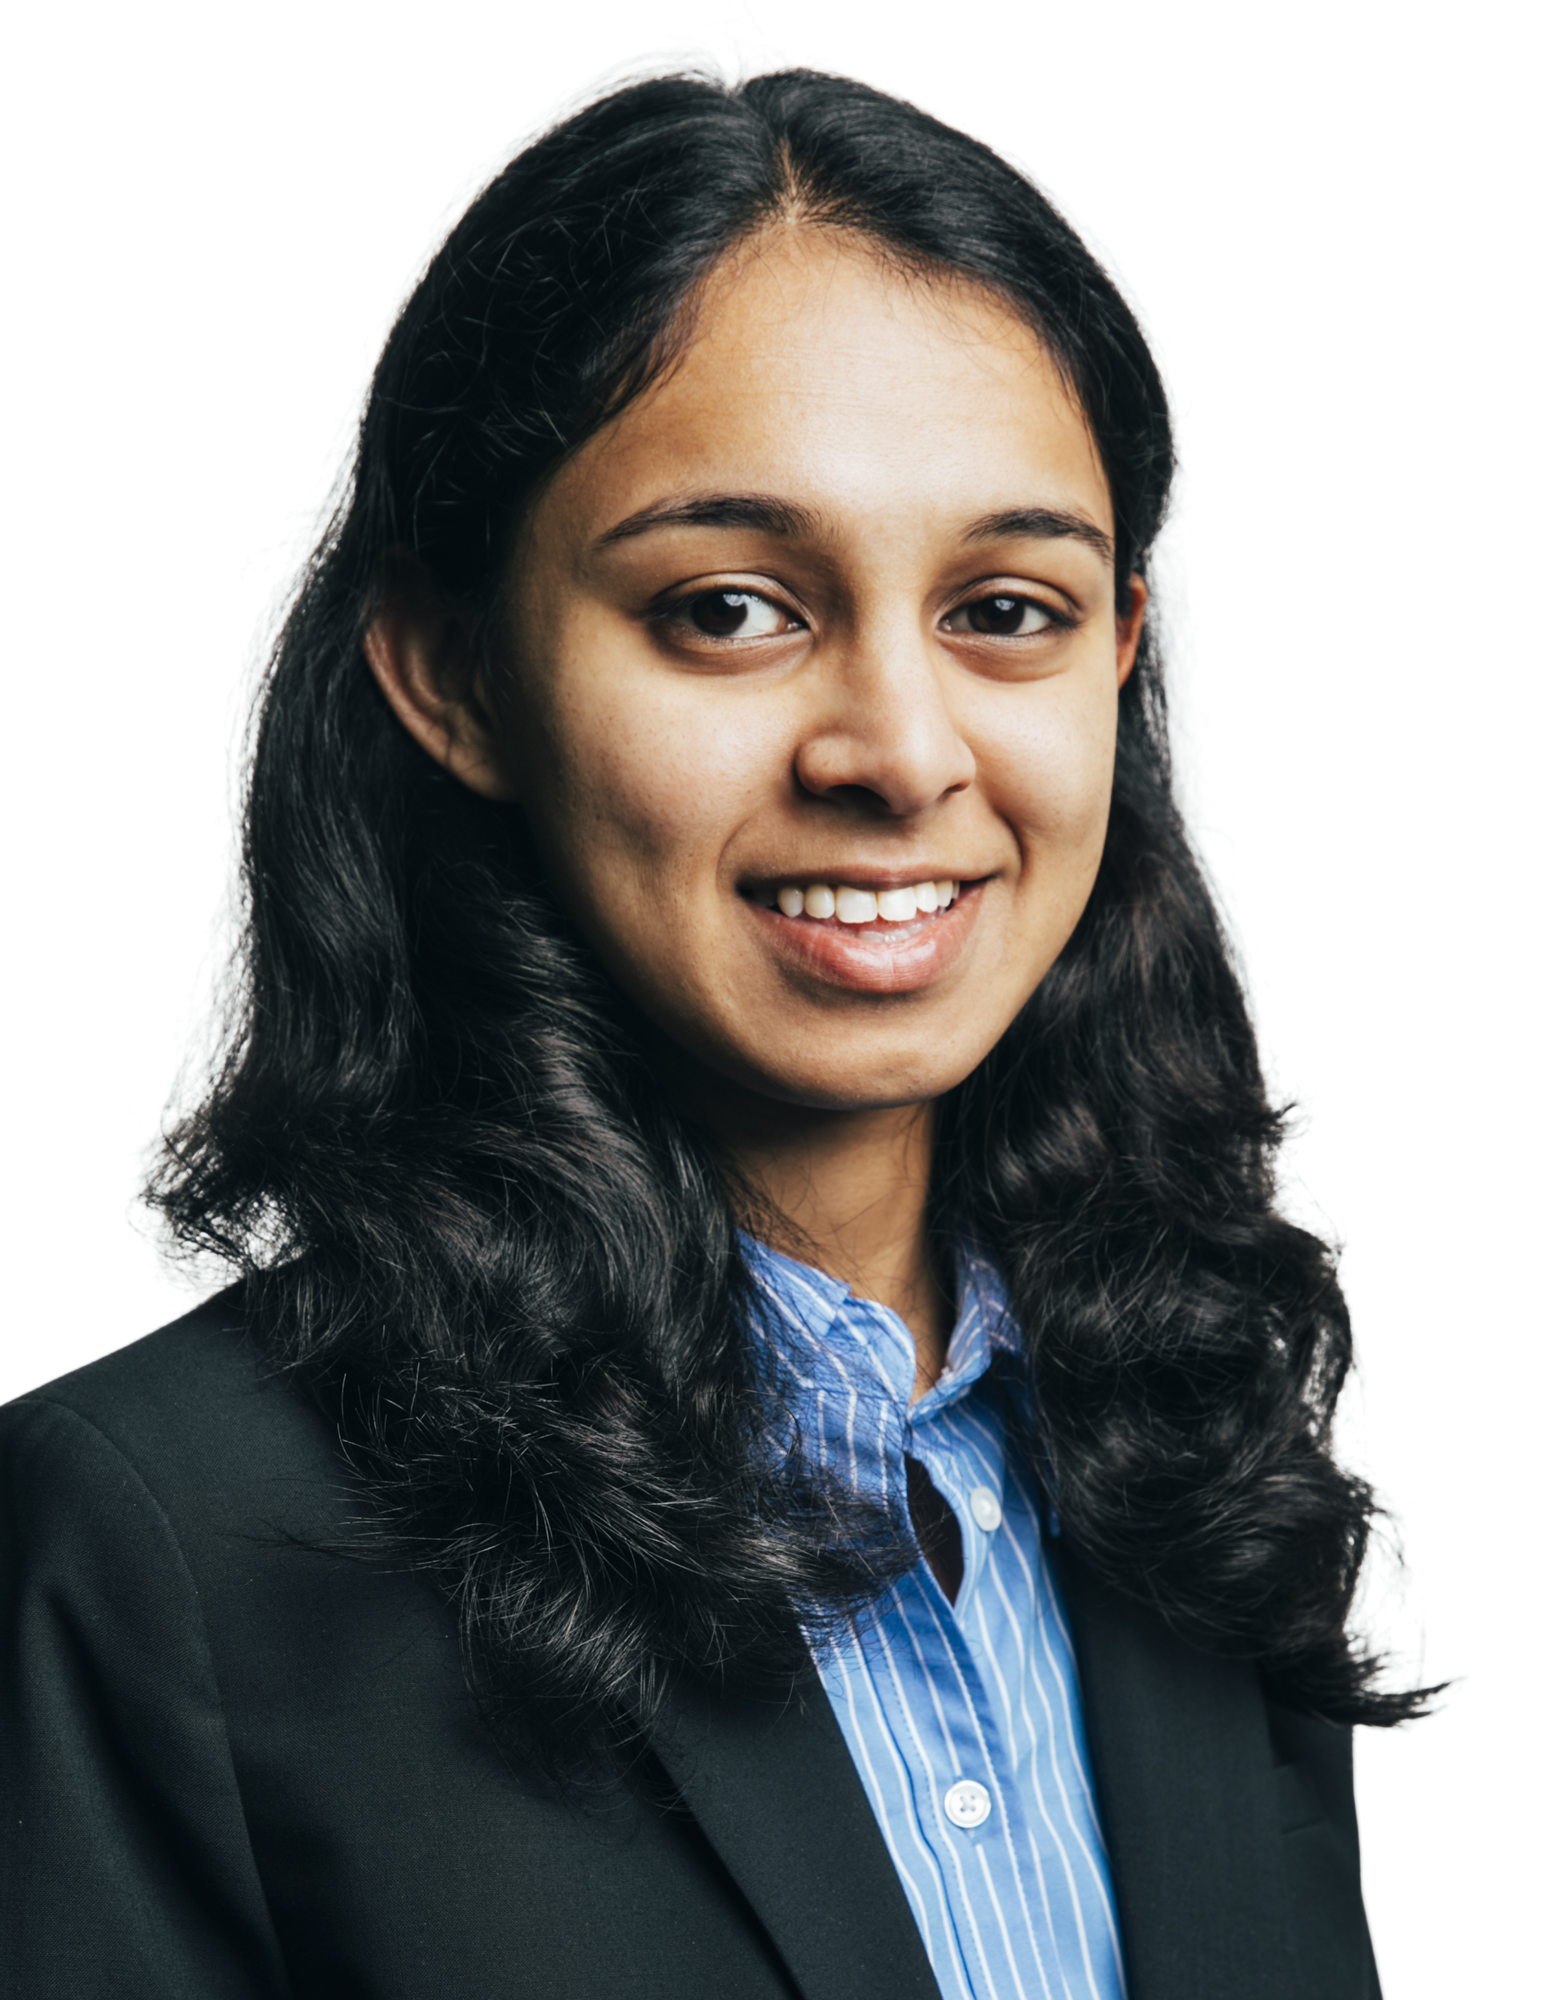 Ananta Sen - Business Development AnalystAnanta joined Riaz Capital in September 2019 as the Business Development Analyst to support the CEO and Chief of Staff in the overall development of external relationships as well as daily operations of the company. She is involved in helping to accomplish fundraising, business development, investor relations, and marketing goals. Ananta holds an MBA from the University of California, Davis which she completed just before starting work at Riaz Capital. Ananta also holds a Post Graduate Diploma in Finance and Investment from the University of Edinburgh (UK), a Post-Graduate Certificate in Marketing Management from the University of California, Santa Cruz and an undergraduate degree in Business Administration from Birla Institute of Technology, India. Prior to working at Riaz Capital and before her MBA, Ananta worked in various well-established and mission-driven companies, including Deloitte in India and the Sustainability Accounting Standards Board (SASB) in San Francisco. She held investor relations, marketing, and business intelligence roles in her previous roles.Ananta moved to the Bay Area in 2015 after having lived and studied in India, the United Kingdom, Singapore, and Oman. She found herself a perfect fit in a company that enables talented professionals in the Bay Area to find an affordable and comfortable housing solution without compromising their quality of living. In her free time, Ananta enjoys exploring restaurants in the Bay Area and around the world in search for the best seafood and ice cream, in addition to swimming and biking.